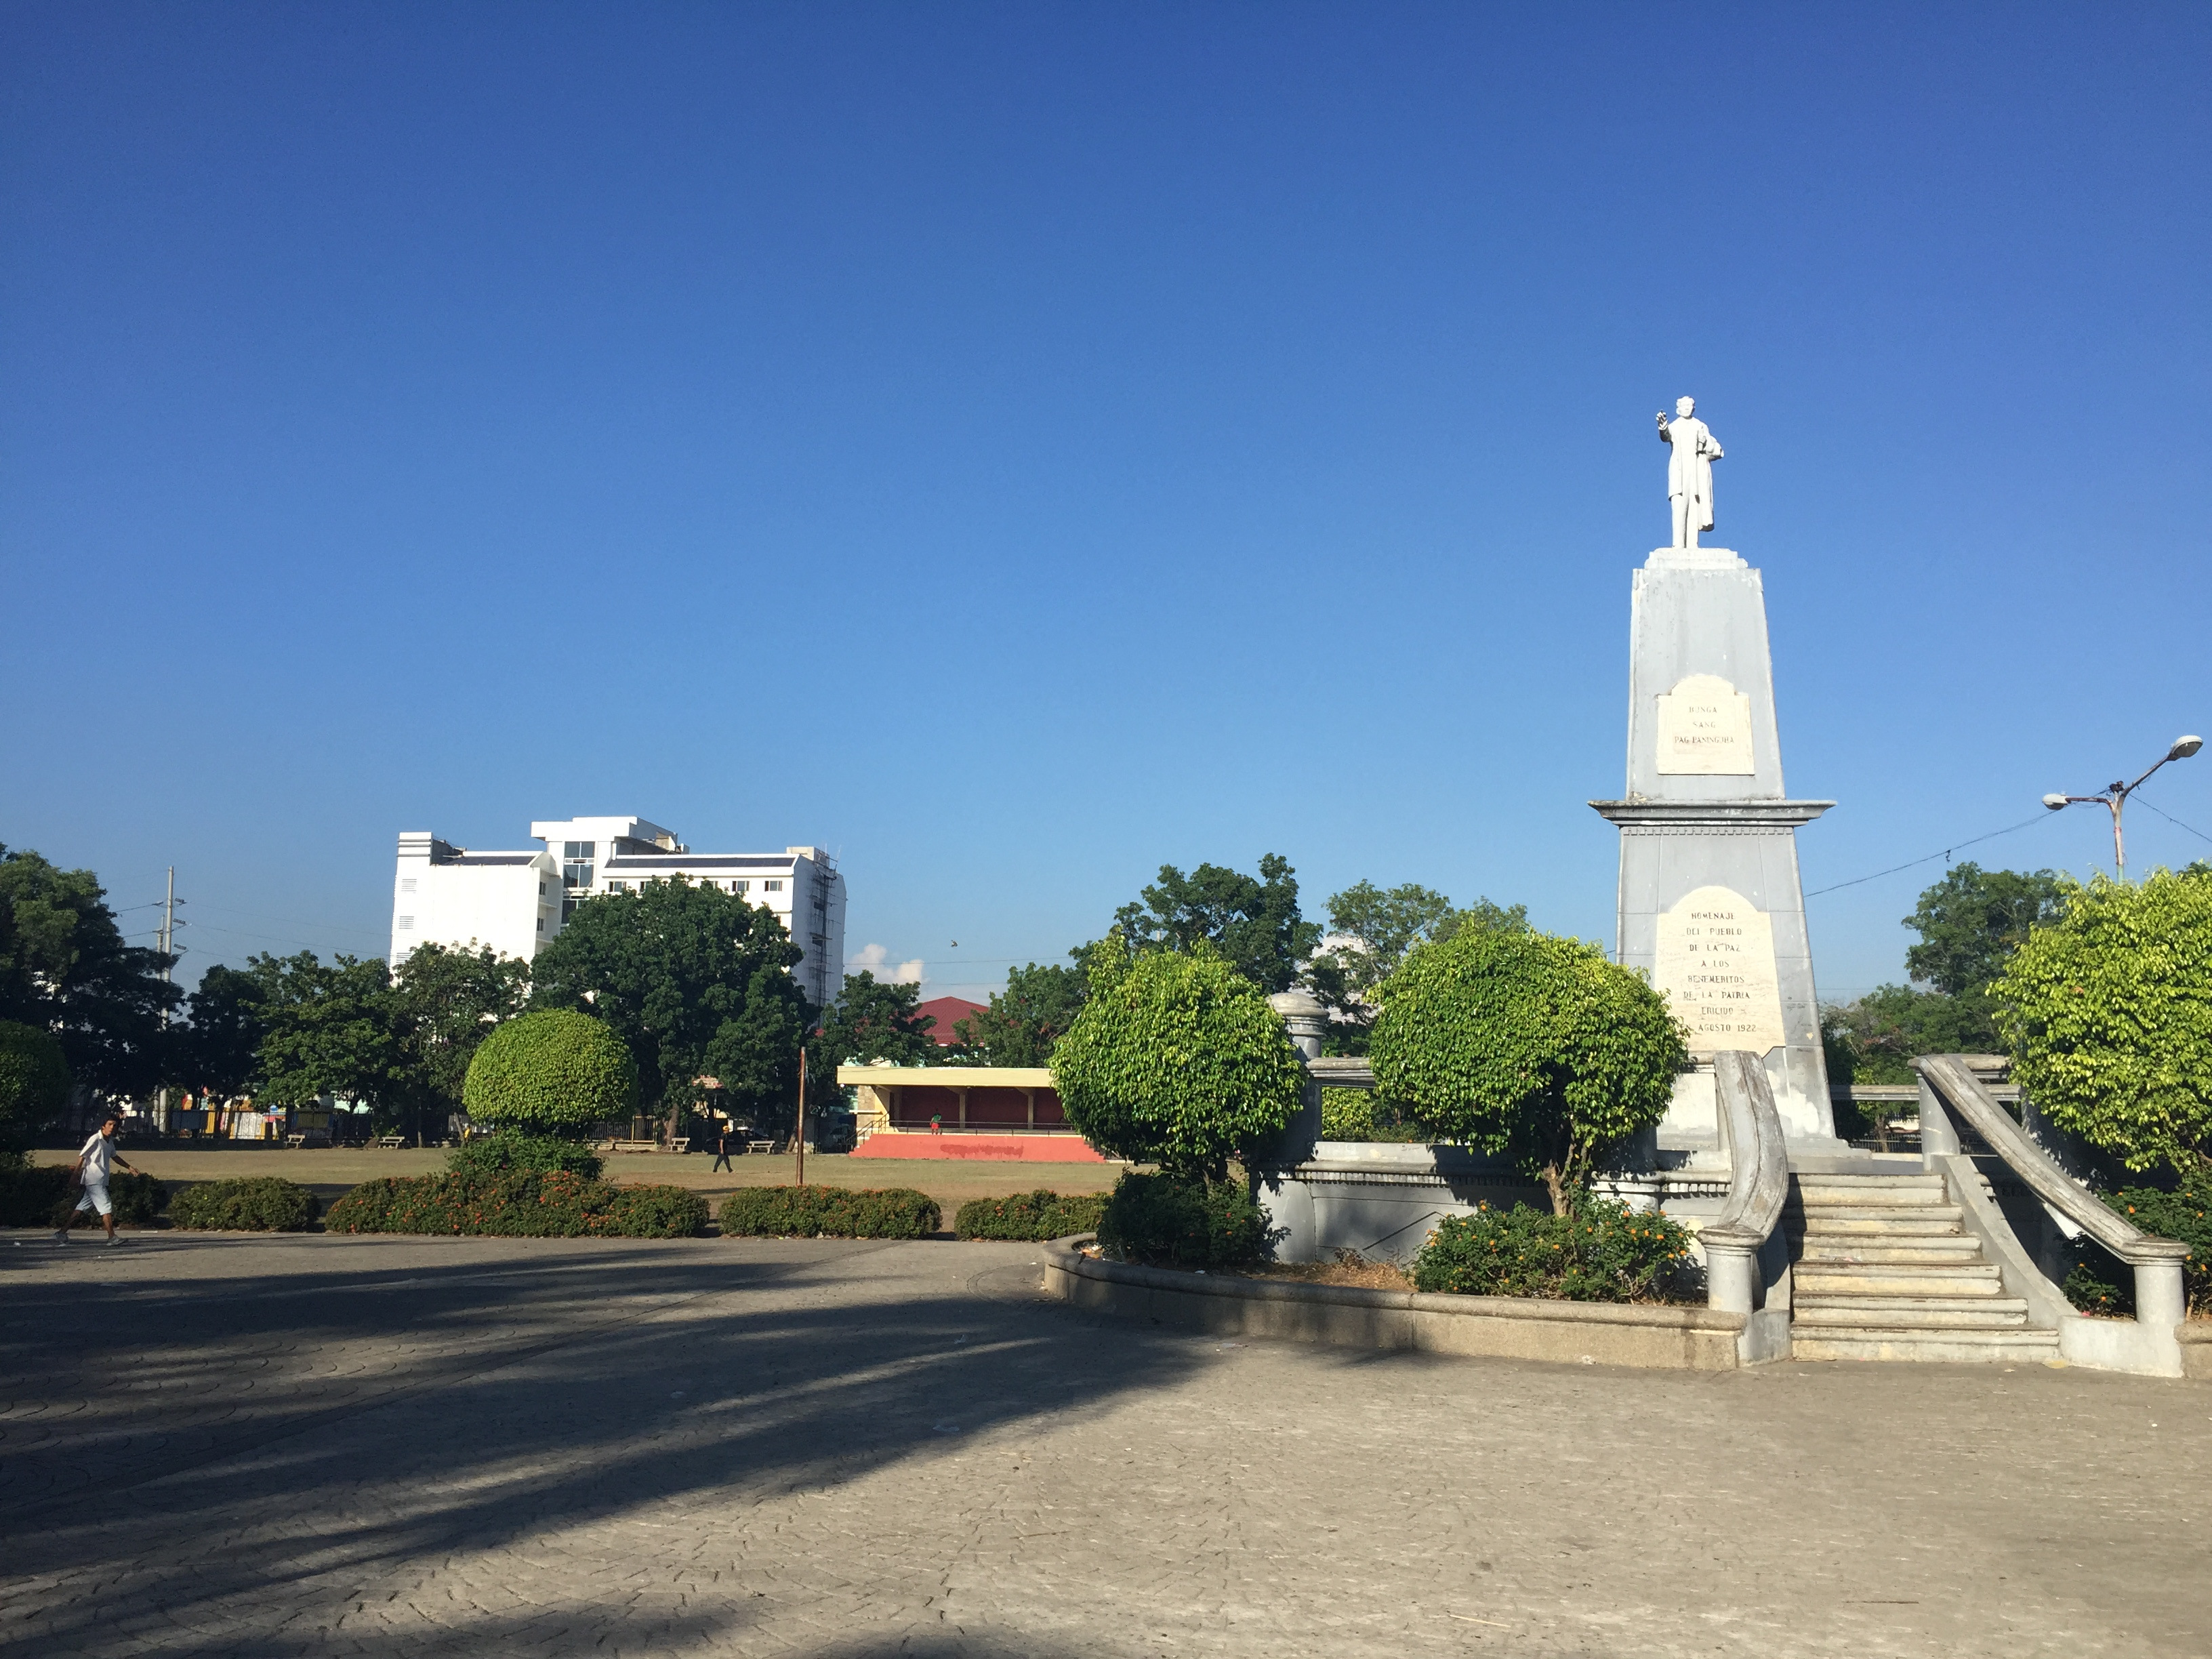 What's a plaza without Dr. Jose Rizal statue. I was seeing a few people doing rounds of their morning jog / walk in this place.